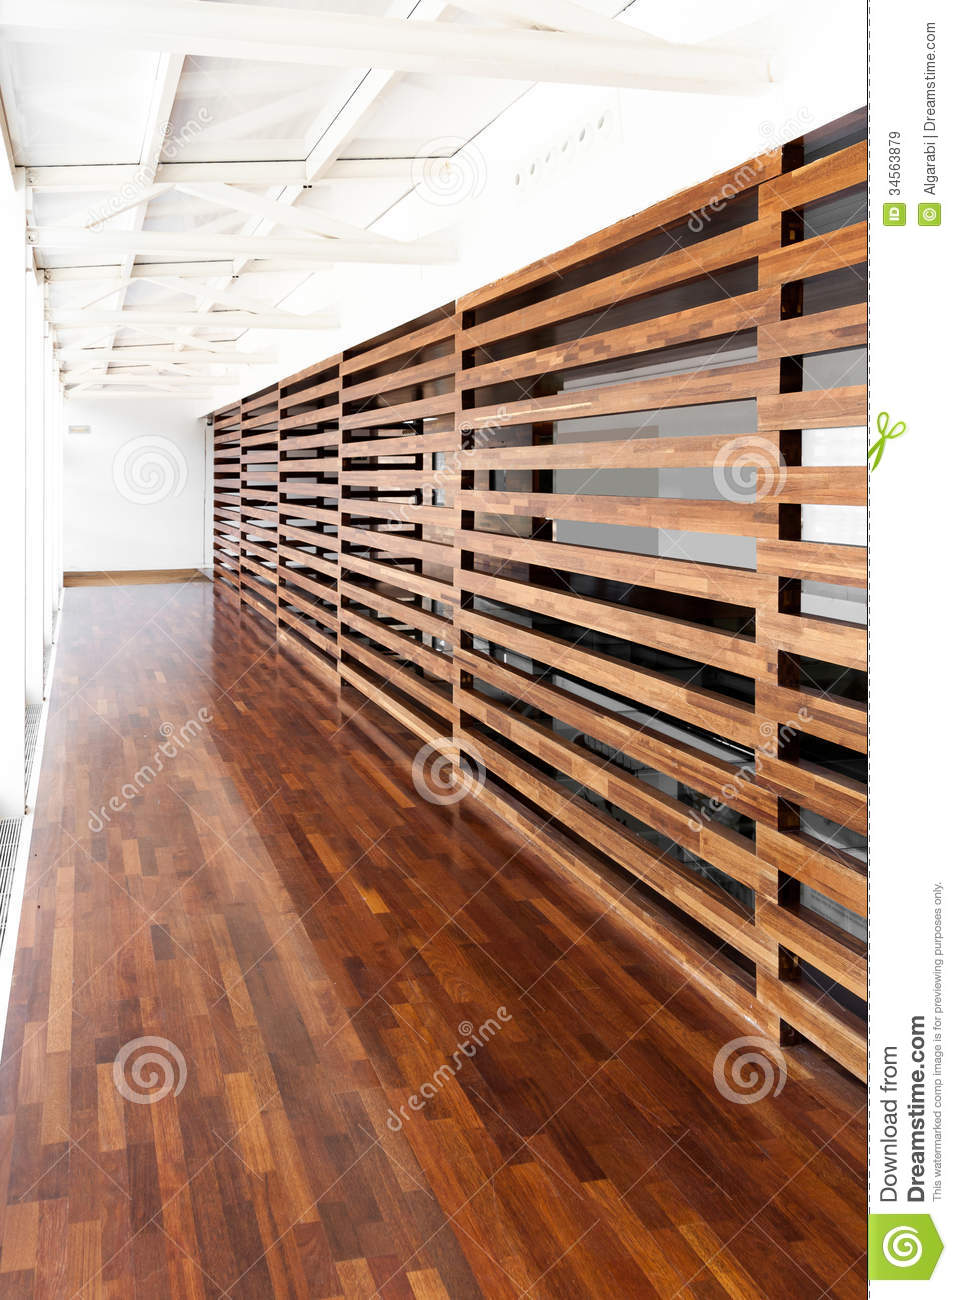 Wooden Wall Stock Image Image Of Architectural Texture